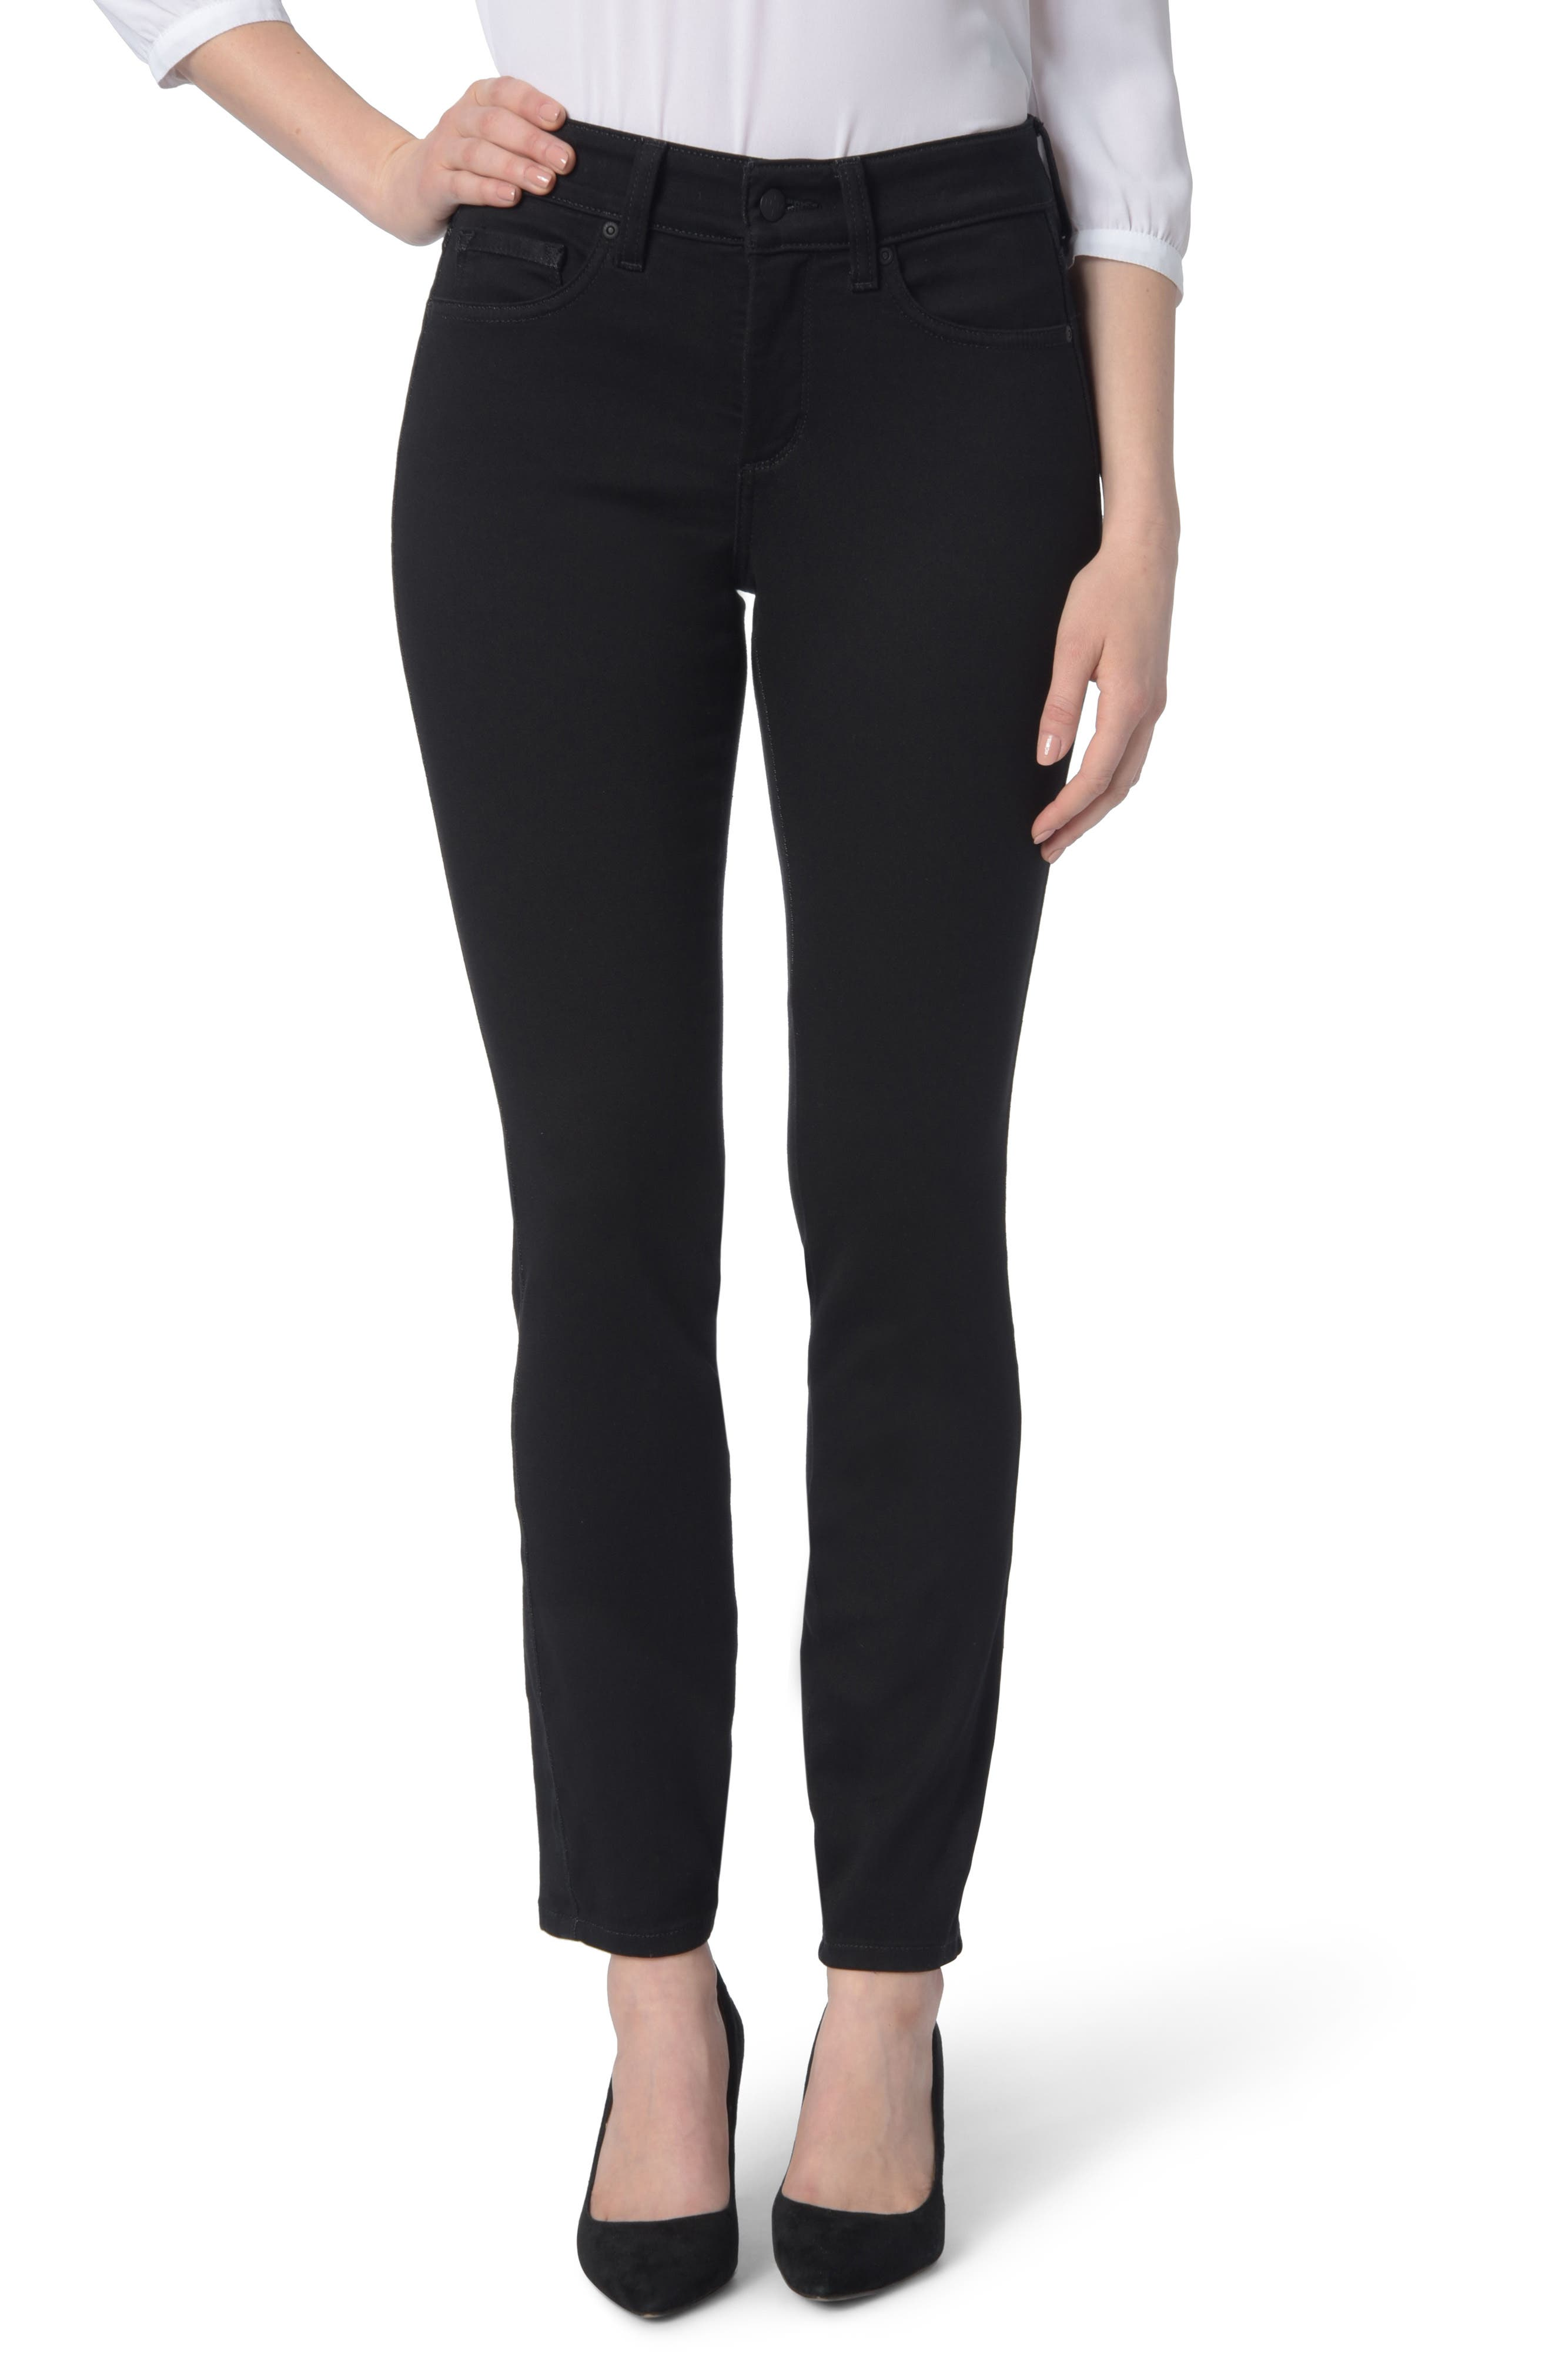 Ami High Waist Colored Stretch Skinny Jeans,                             Main thumbnail 1, color,                             BLACK